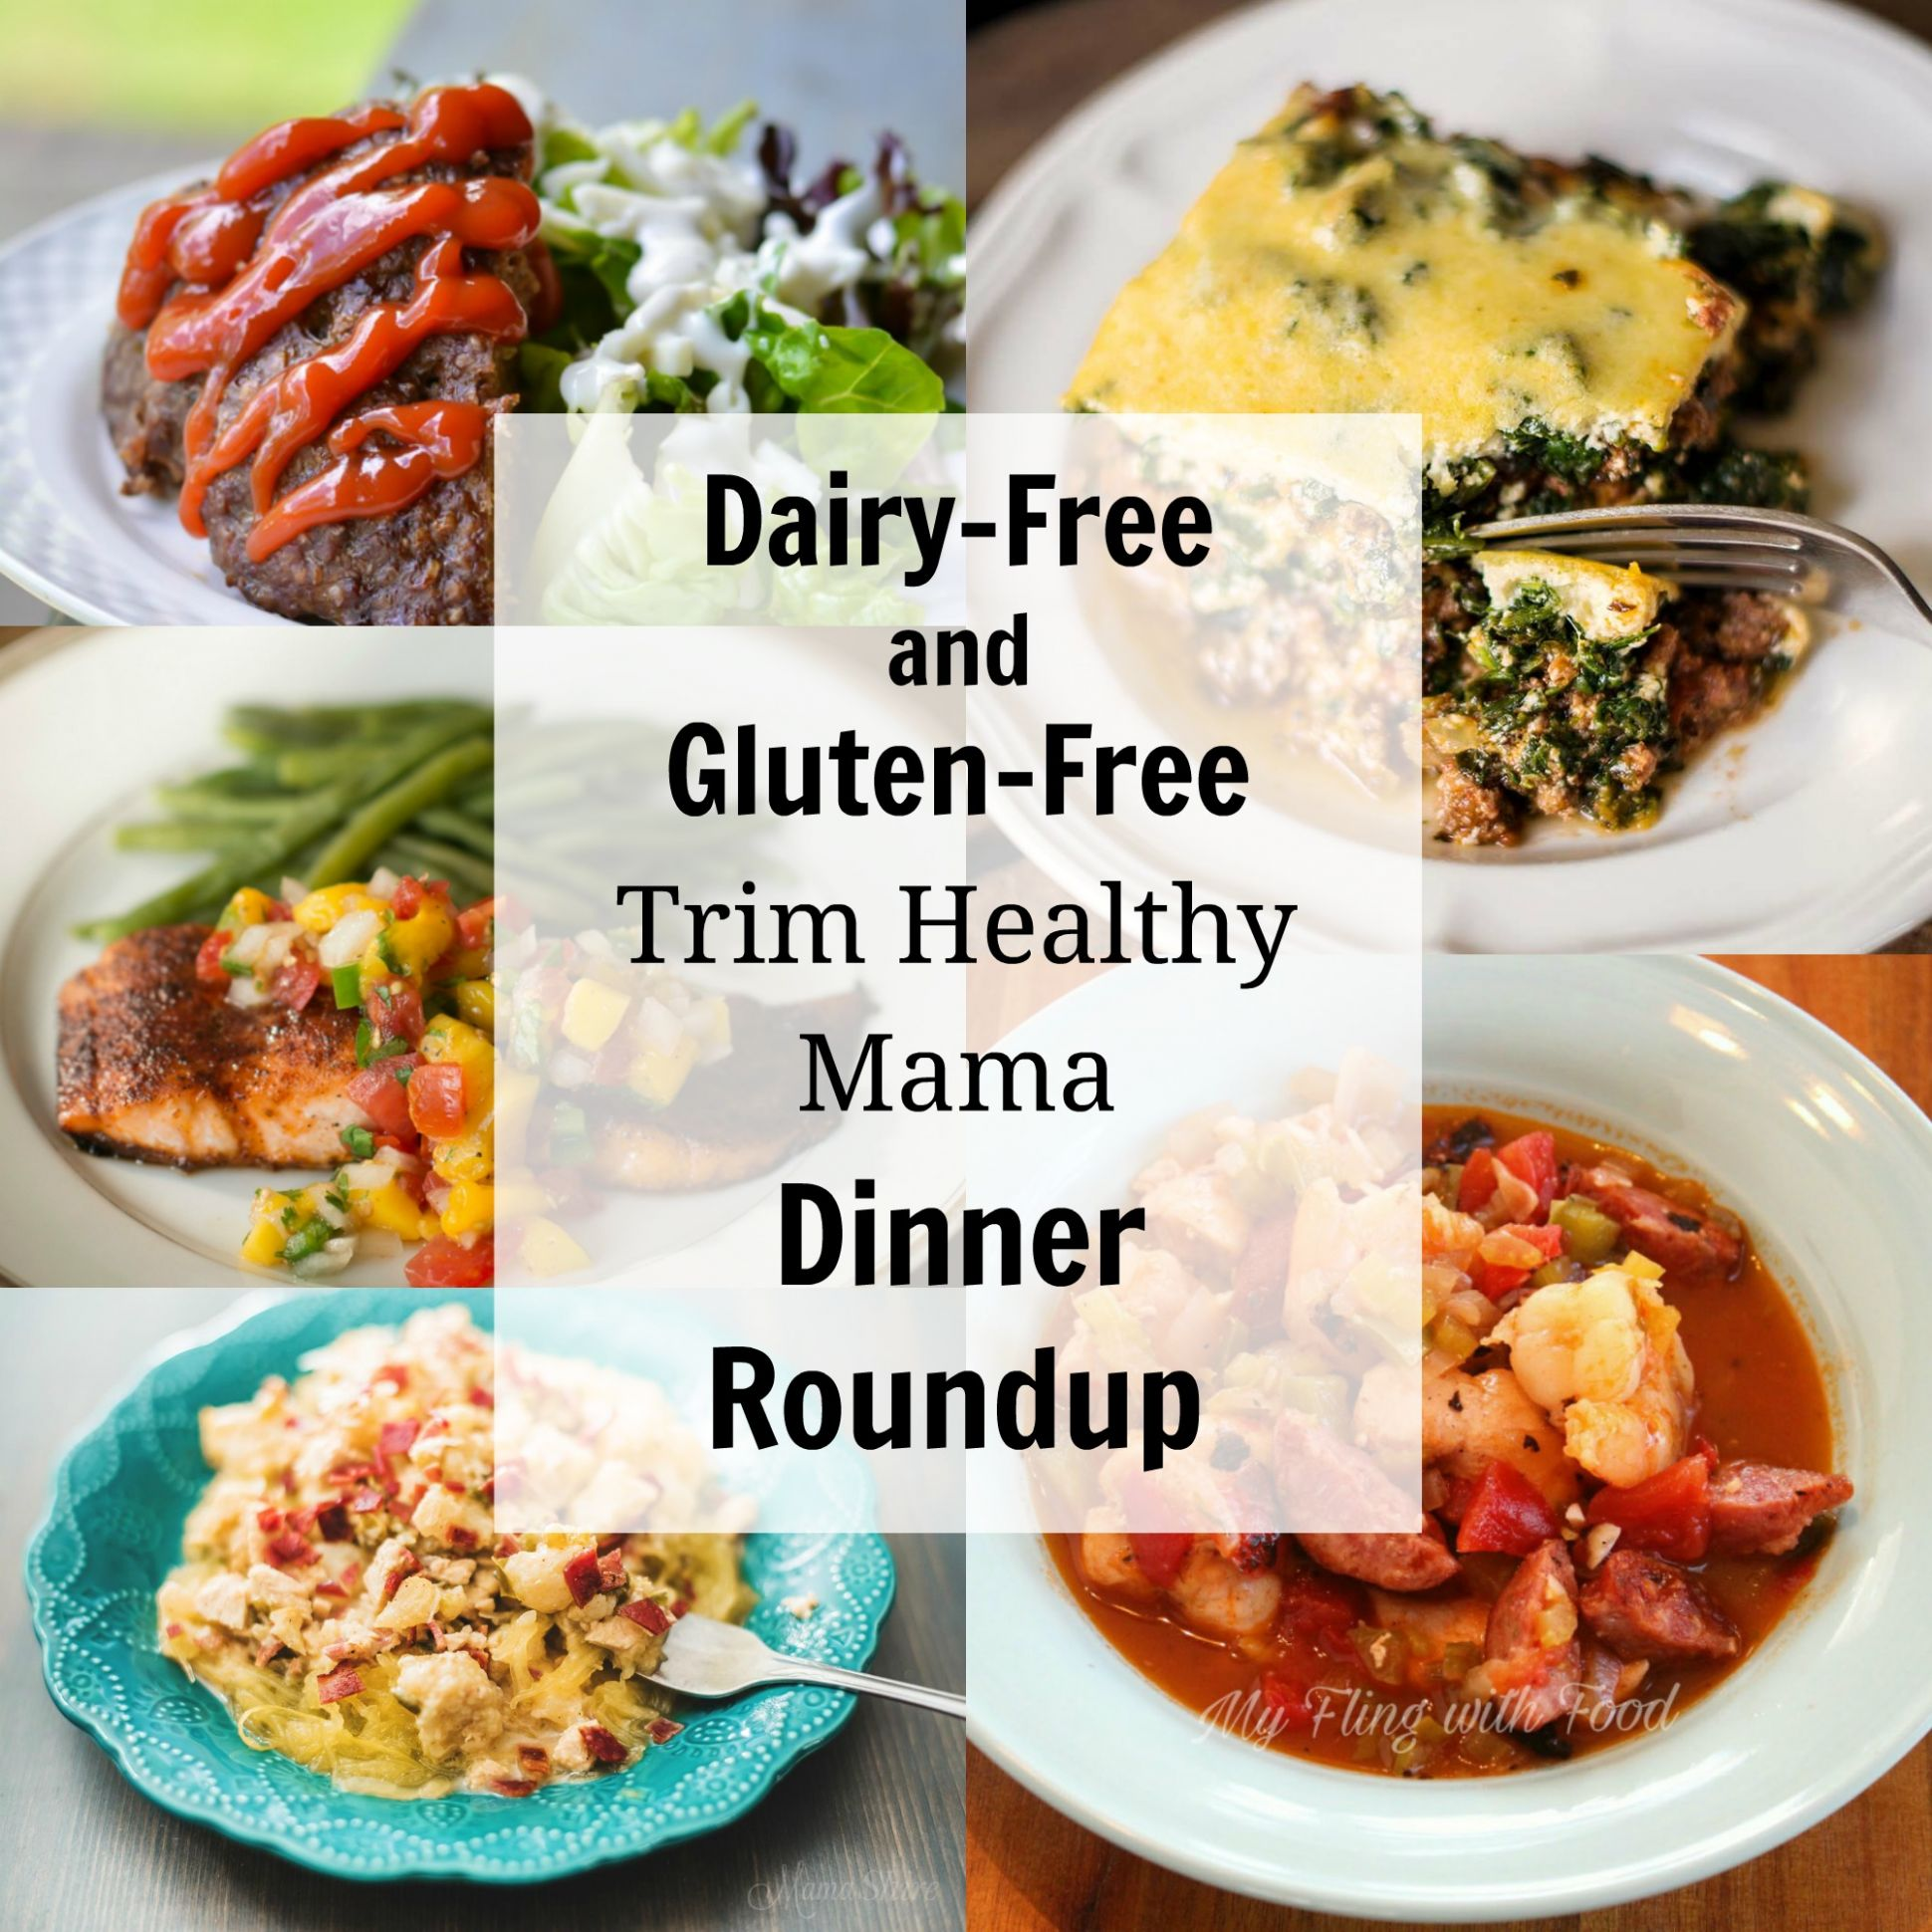 Dairy-Free and Gluten-Free Trim Healthy Mama Dinners - MamaShire - Dinner Recipes Dairy Free